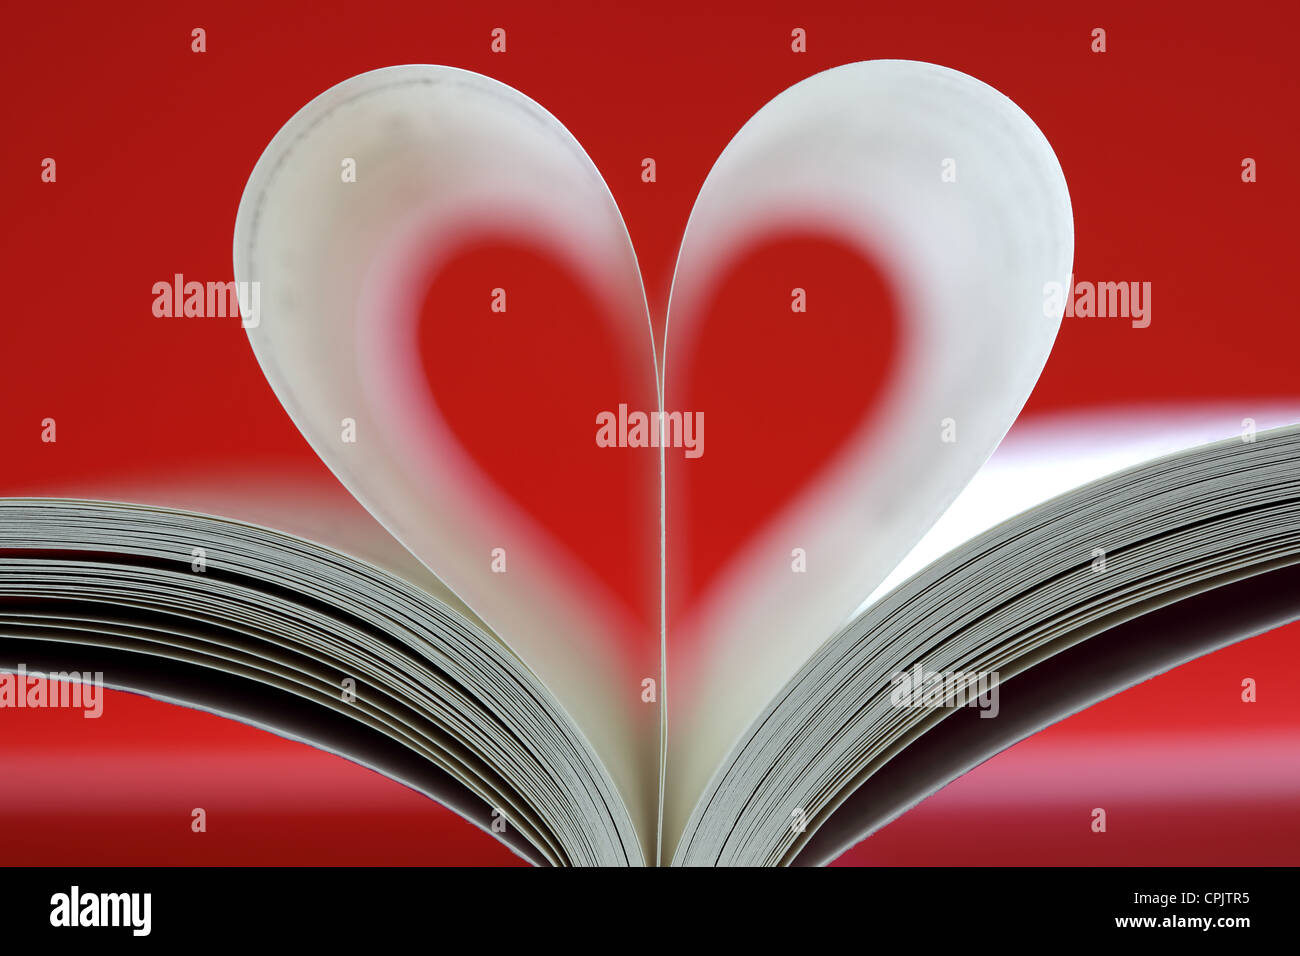 Heart shaped book - Stock Image